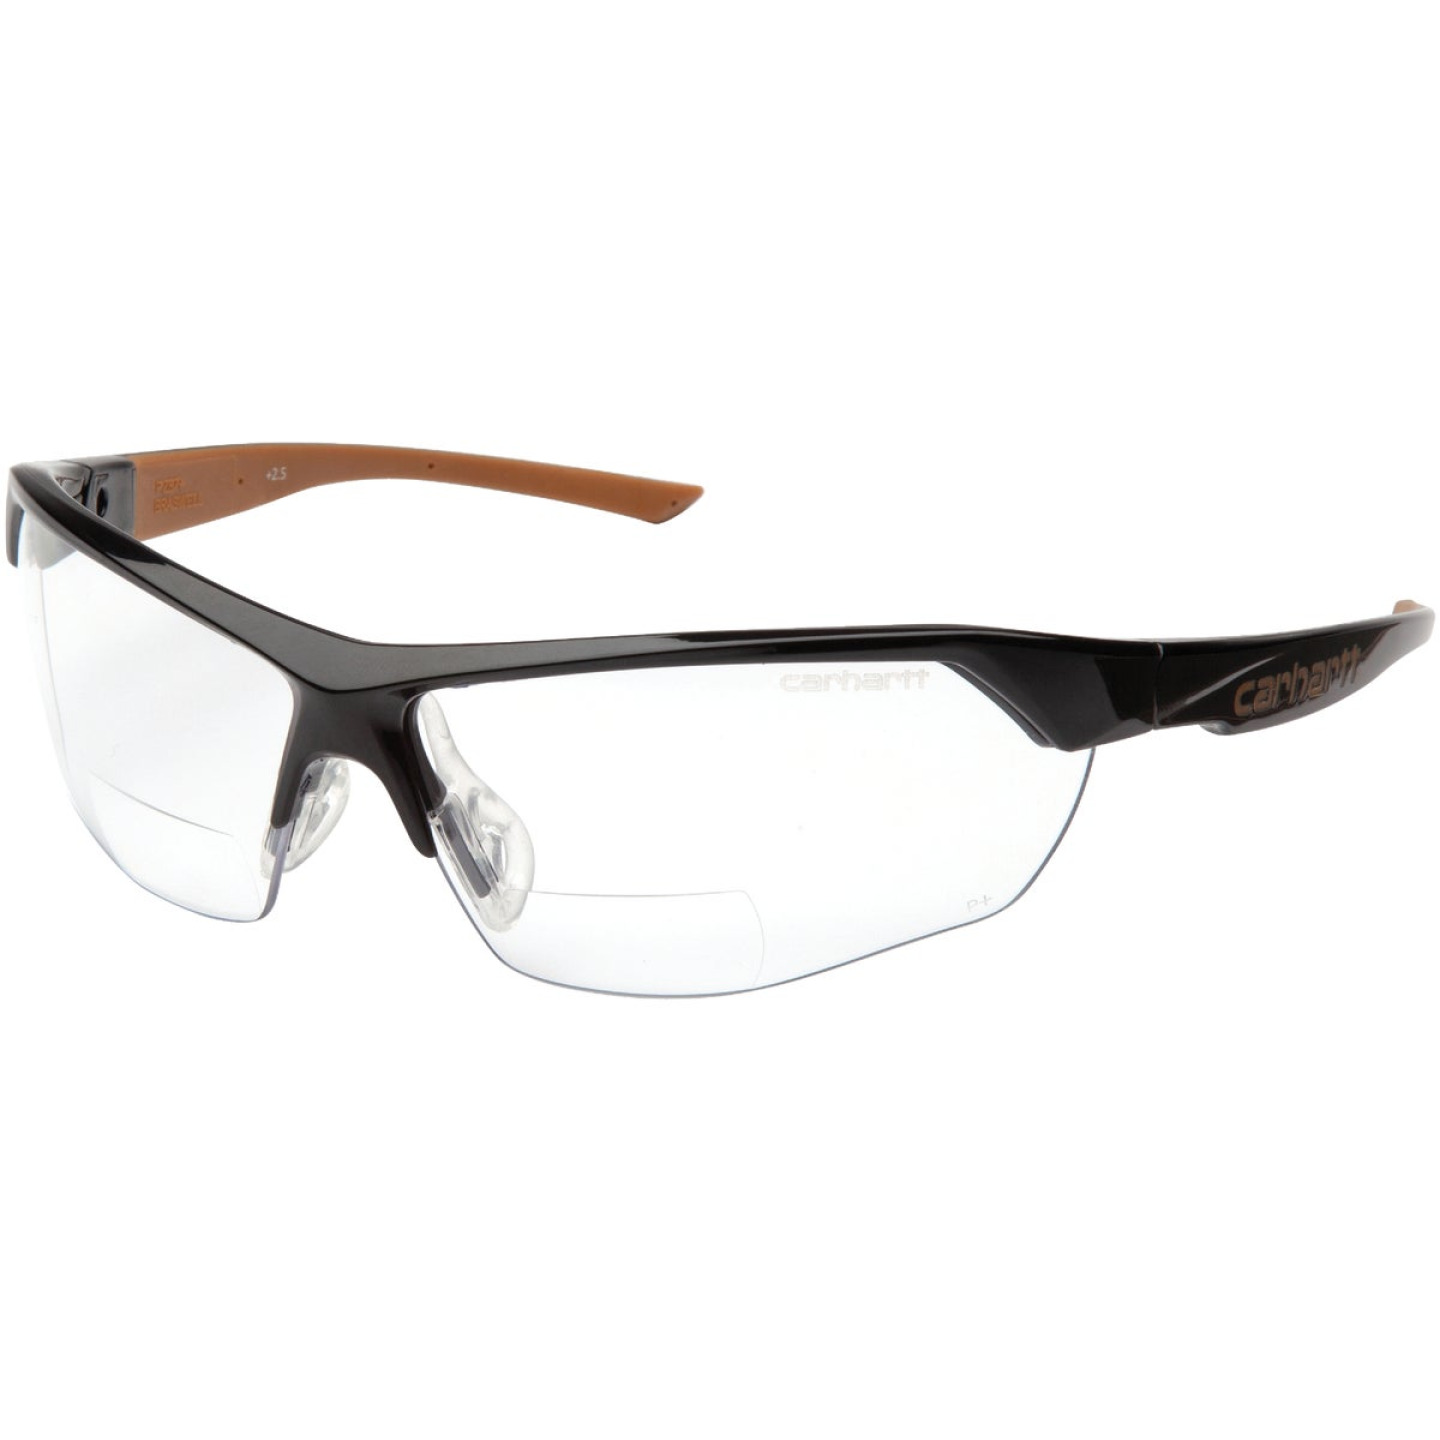 Carhartt Braswell Black Frame Reader Safety Glasses with Clear Anti-Fog Lenses, 2.0 Diopter Image 1